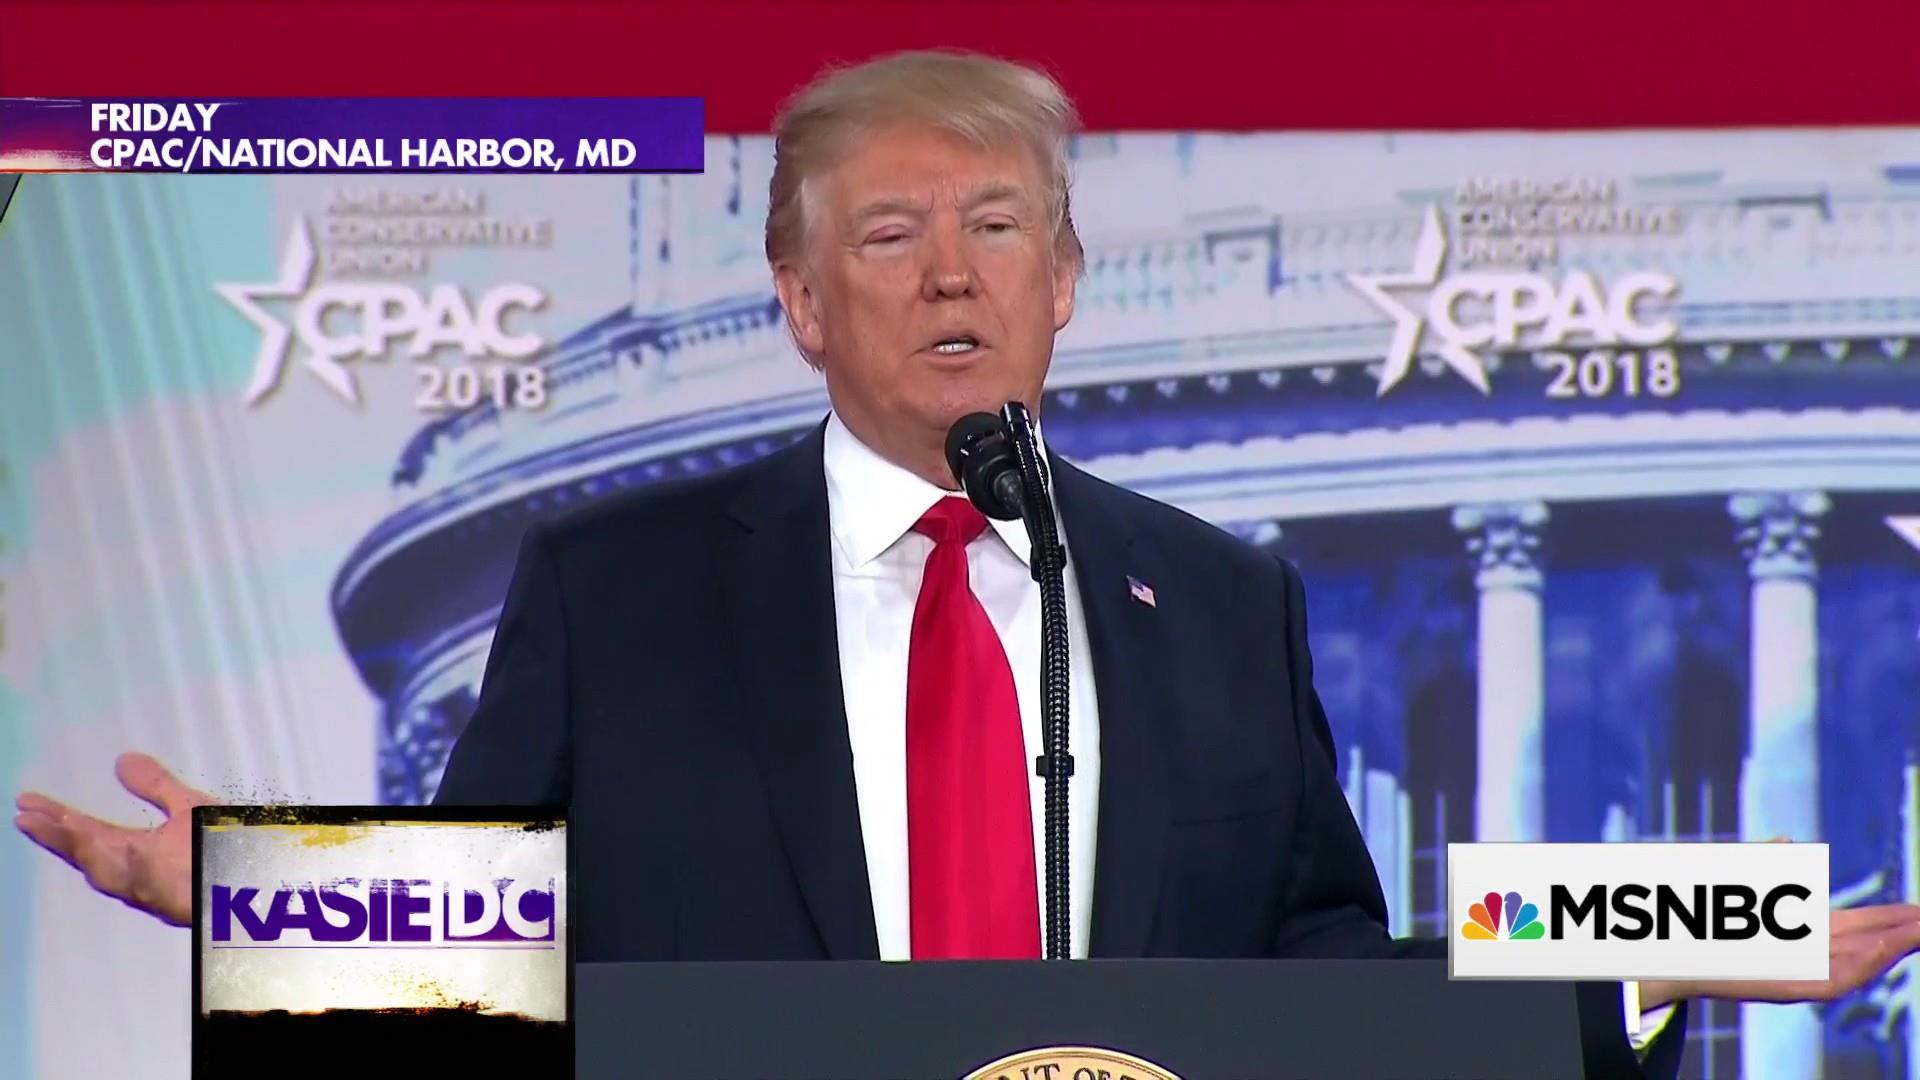 Trump covers just about everything in his CPAC speech